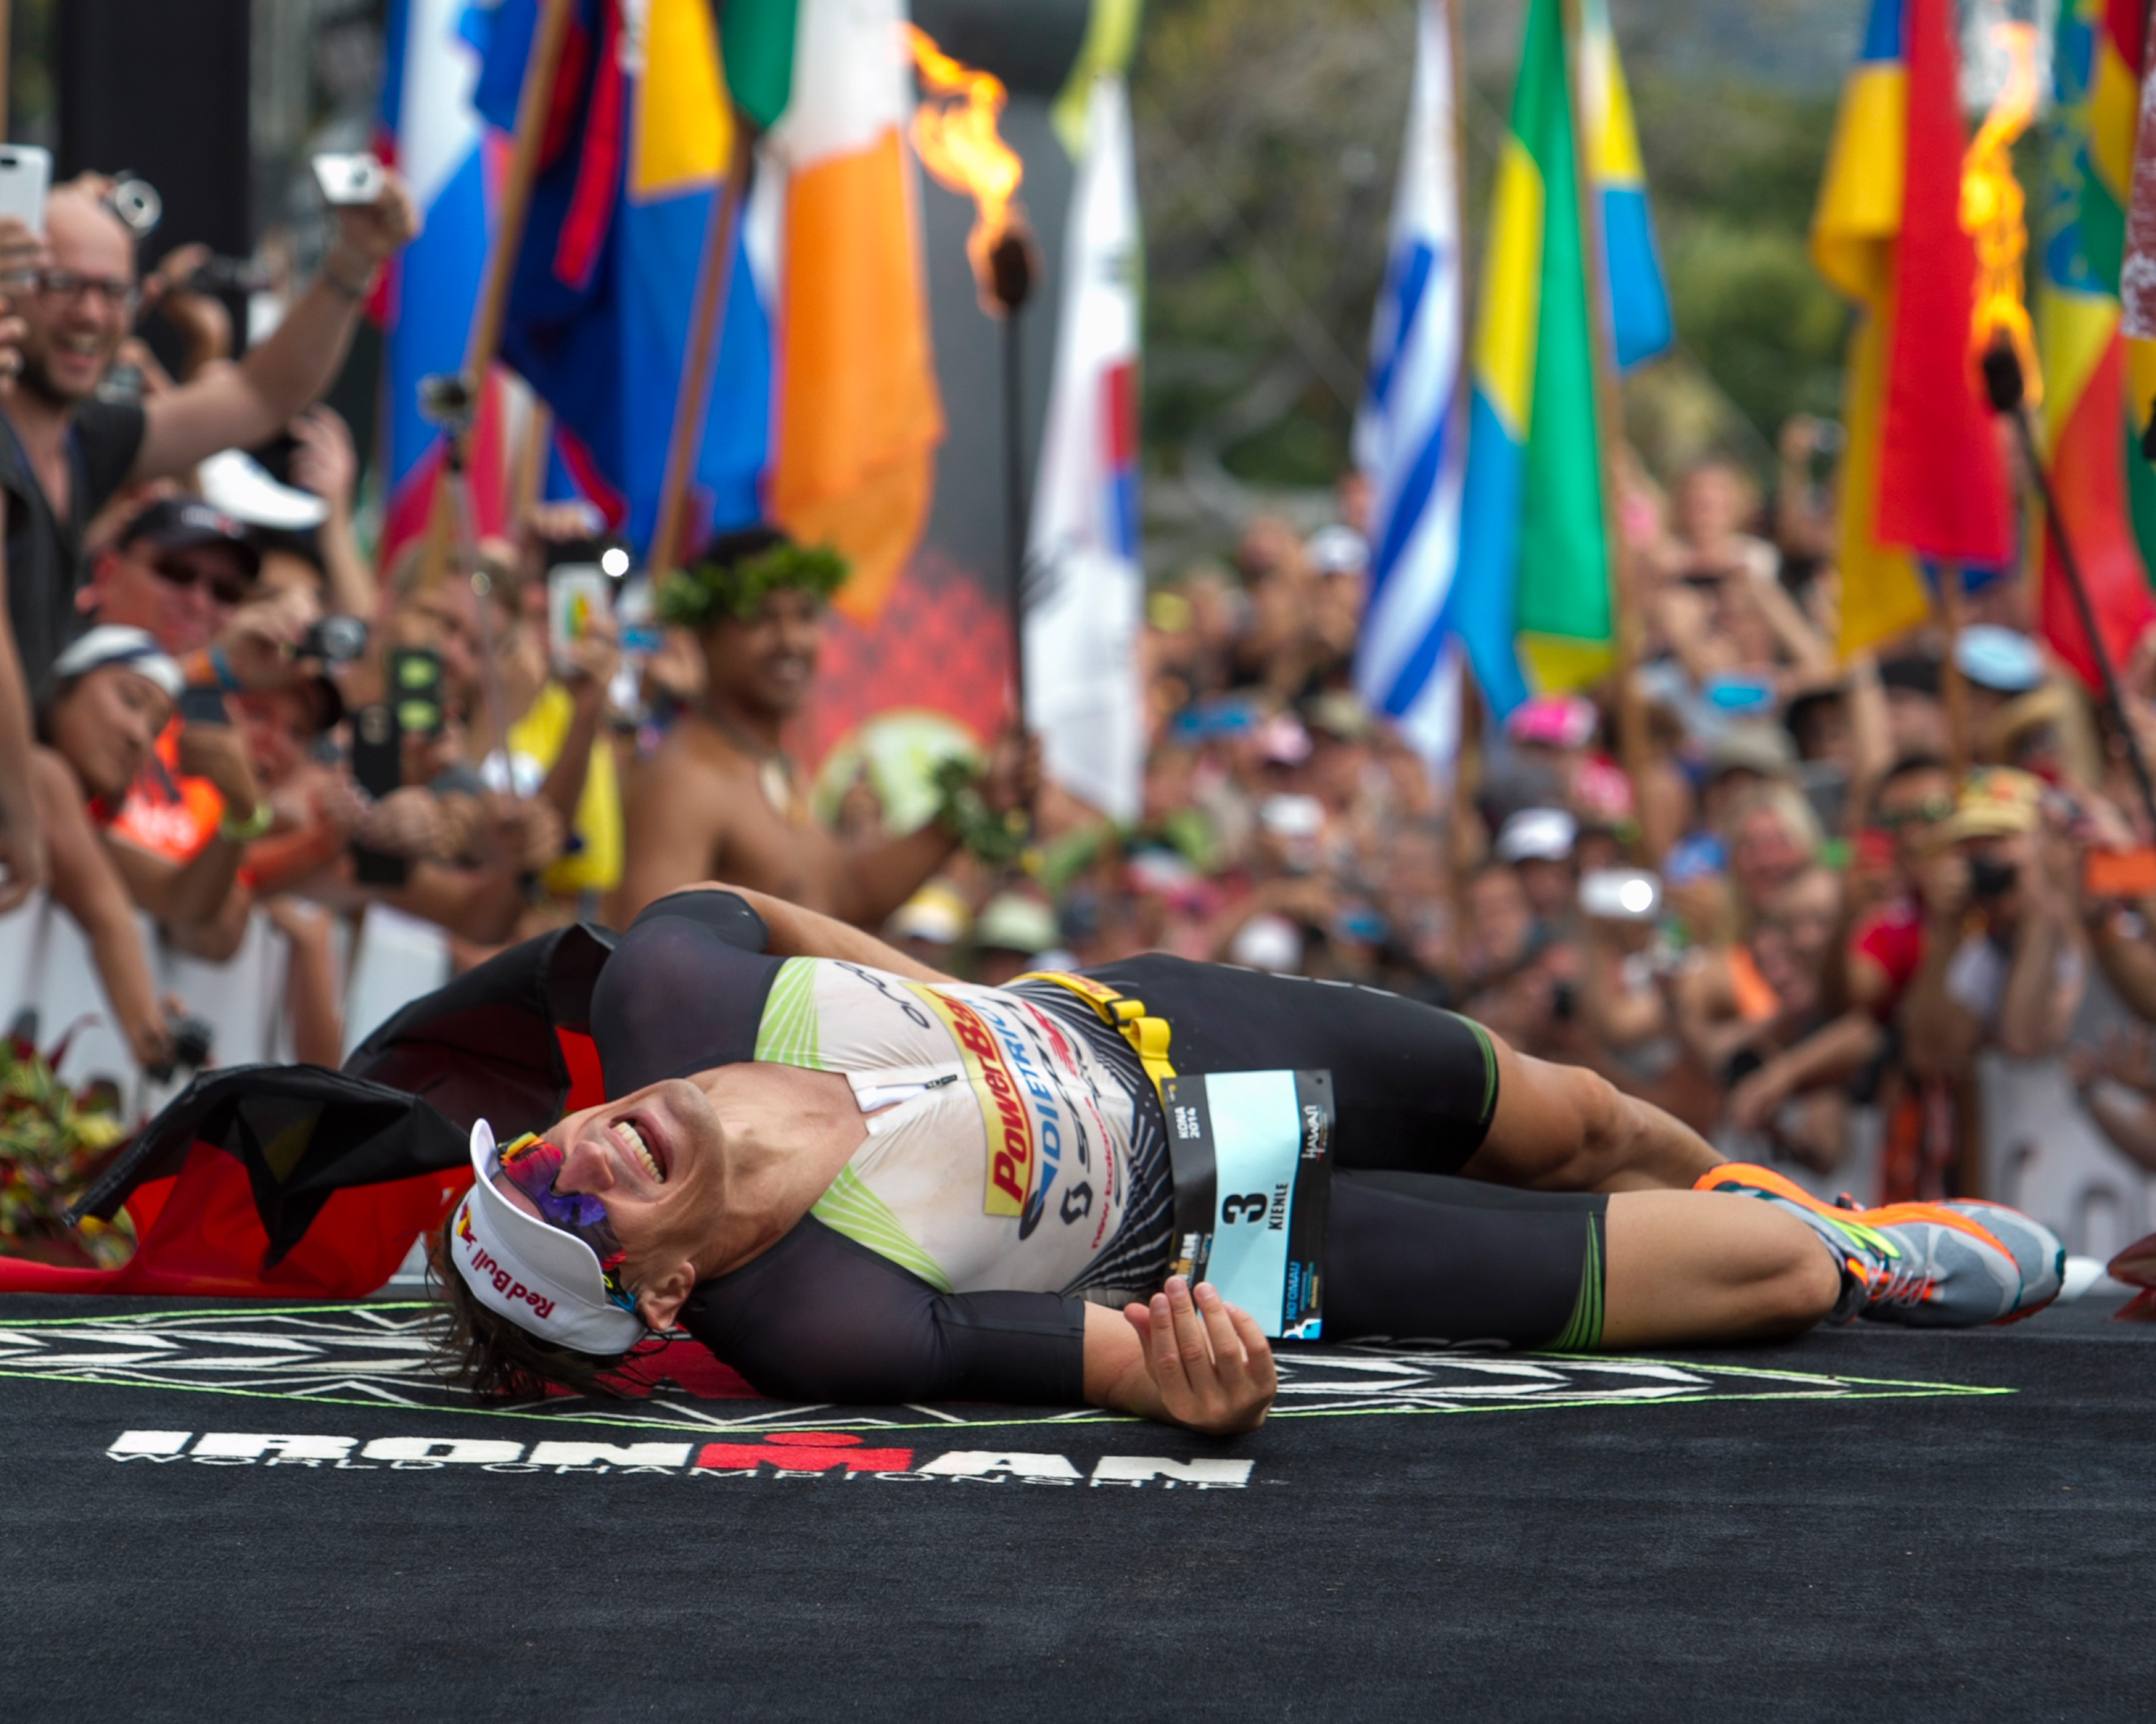 Sebastian Kienle reacts after winning the men's 2014 IRONMAN World Championship.